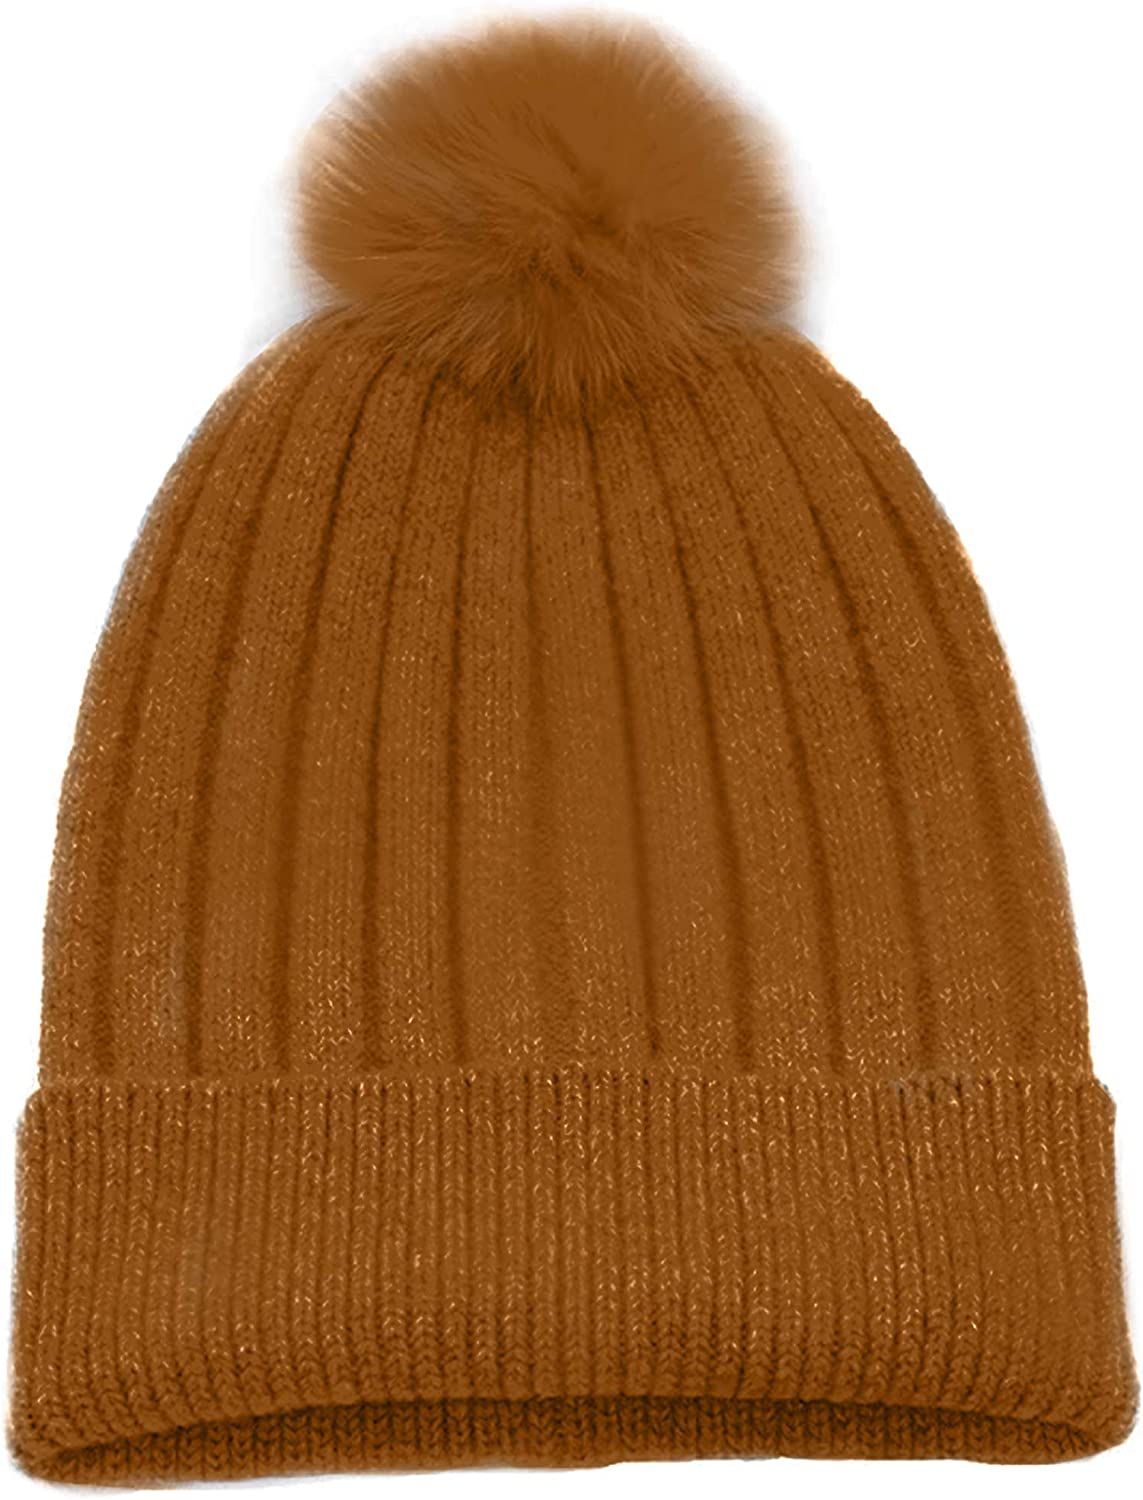 Max 55% OFF State Cashmere Cheap mail order shopping Rabbit Fur Removable Pom-Pom Cashme Hat Pure 100%